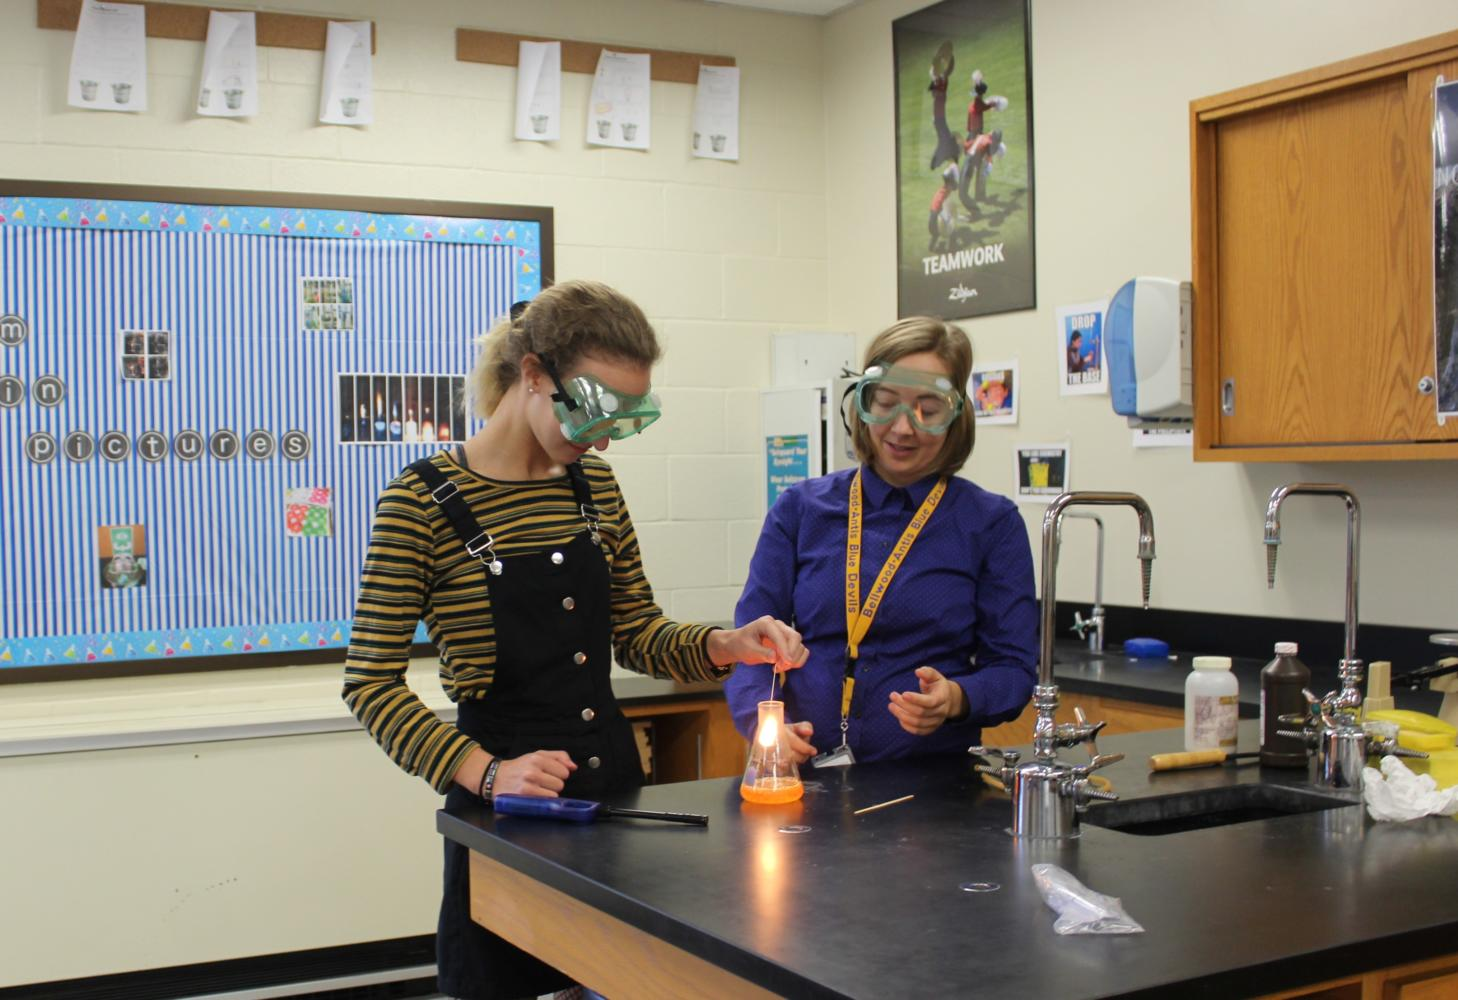 Ms. Carrie Clippard works with Brenin Abbot on a chemistry experiment. Ms. Clippard is happy to hear of an increased emphasis of STEM funding.